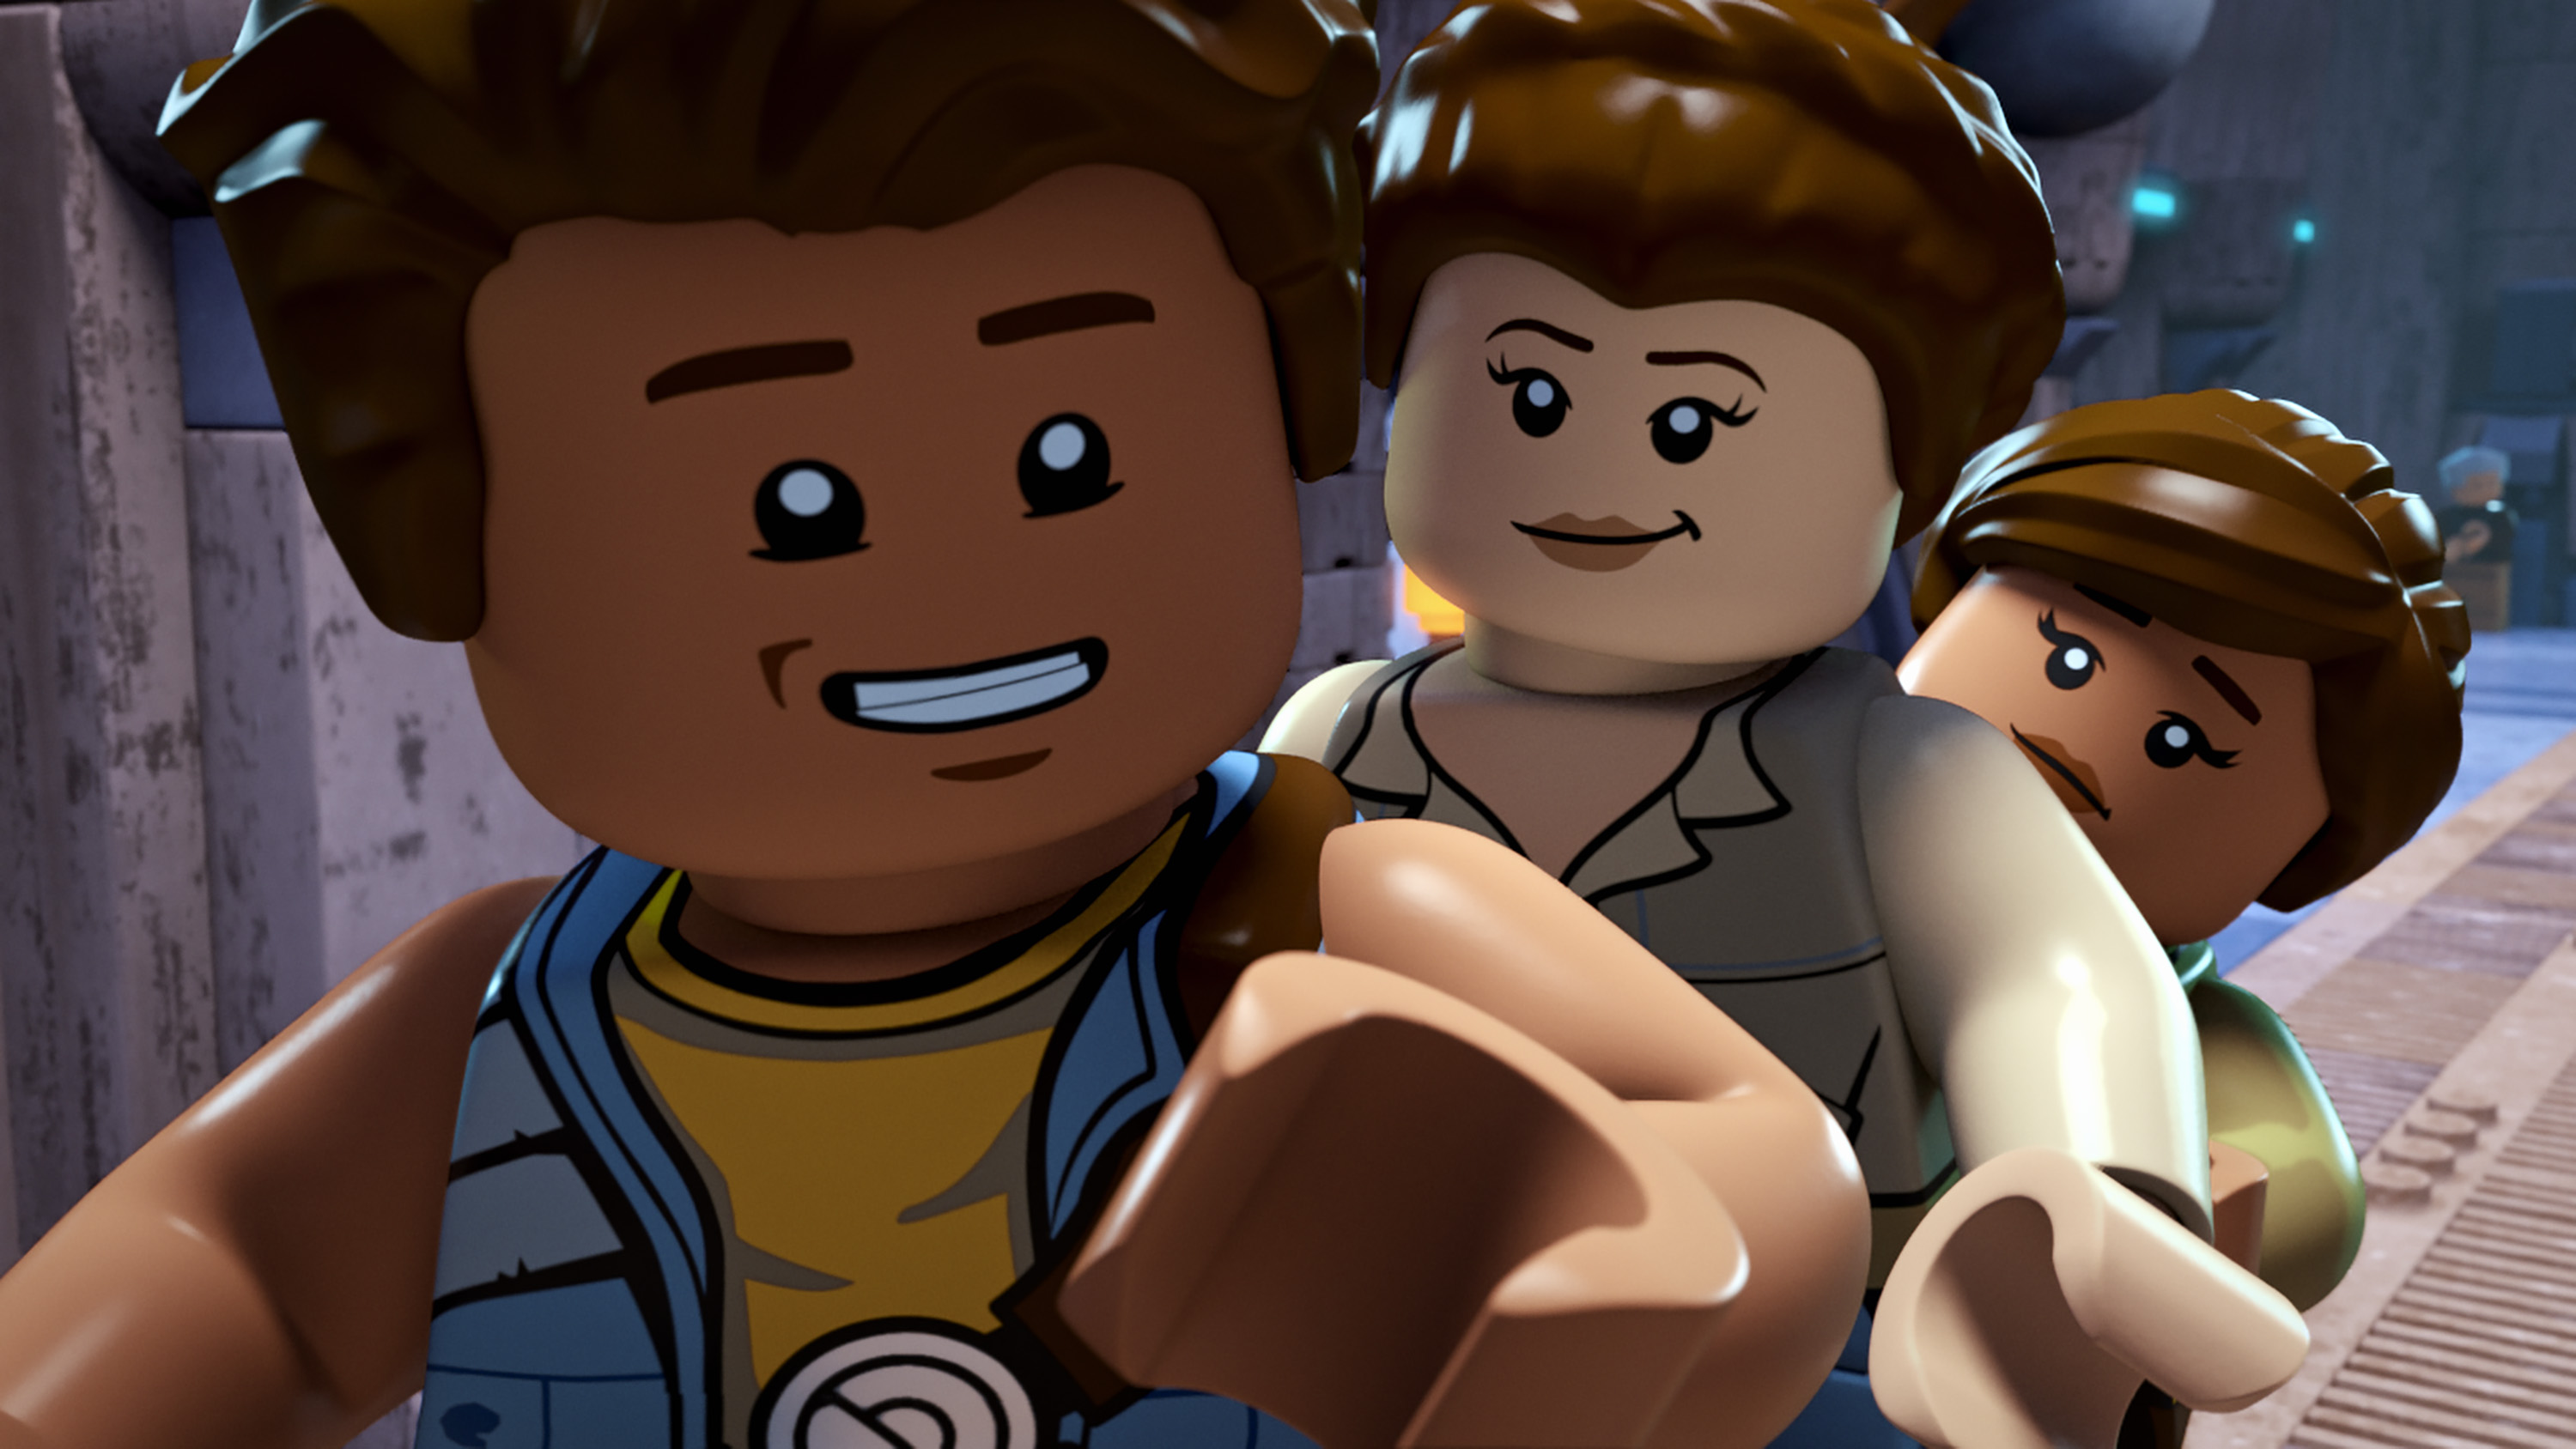 "LEGO STAR WARS: THE FREEMAKER ADVENTURES - ""Crossing Paths"" - While on the run from Imperials, Luke and Leia show the Freemakers the selfless nature of the Force and the Rebellion. This episode of ""LEGO Star Wars: The Freemaker Adventures"" airs Monday, July 11 (10:00 - 10:30 A.M. EDT) on Disney XD. (Disney XD)."